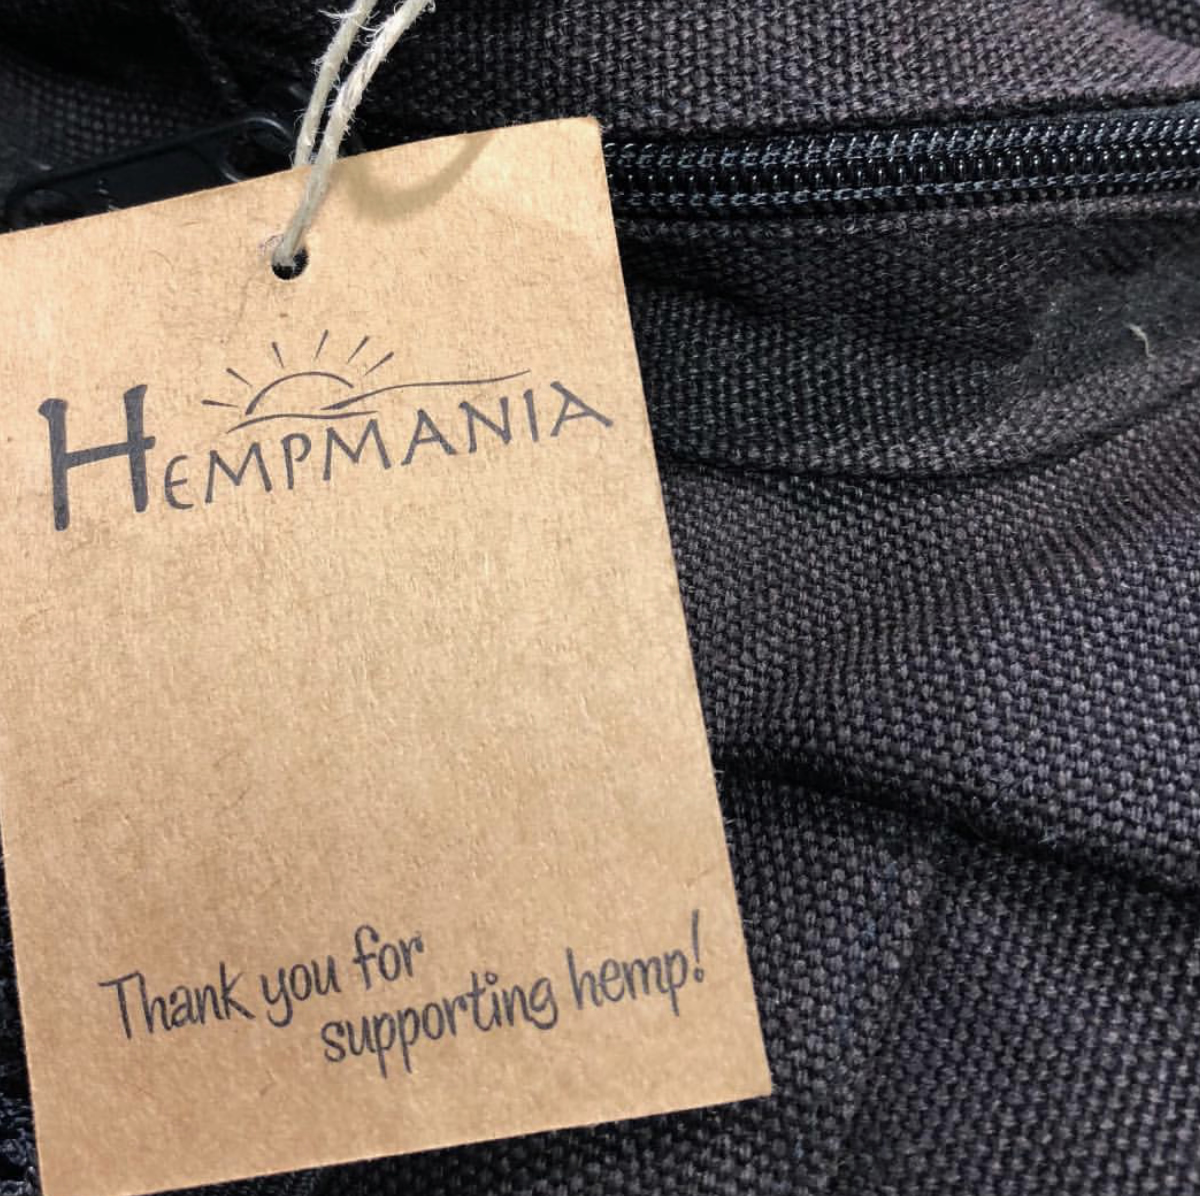 Hemp Mania Bags - Hempmania has partnered with EM to offer a full line of eco friendly, stylish, 100% HEMP bags and accessories that complement the Evolution of YOU. The collaboration brings you eco chic focusing on creating the line in a socially responsible way, in adherence to fair-trade practices and principles.Since 1997 Hempmania has created an extensive line of high quality, earth-friendly hemp products including hemp bags, hemp backpacks, hemp wallets and a wide range of hemp accessories. We focus on creating the line in a socially responsible way in adherence to fair-trade practices and principles. All of our hemp bags and accessories are manufactured in the highlands of Guatemala by an indigenous Mayan family business. Our company is constantly creating new hemp products for our hemp retail and hemp wholesale customers.